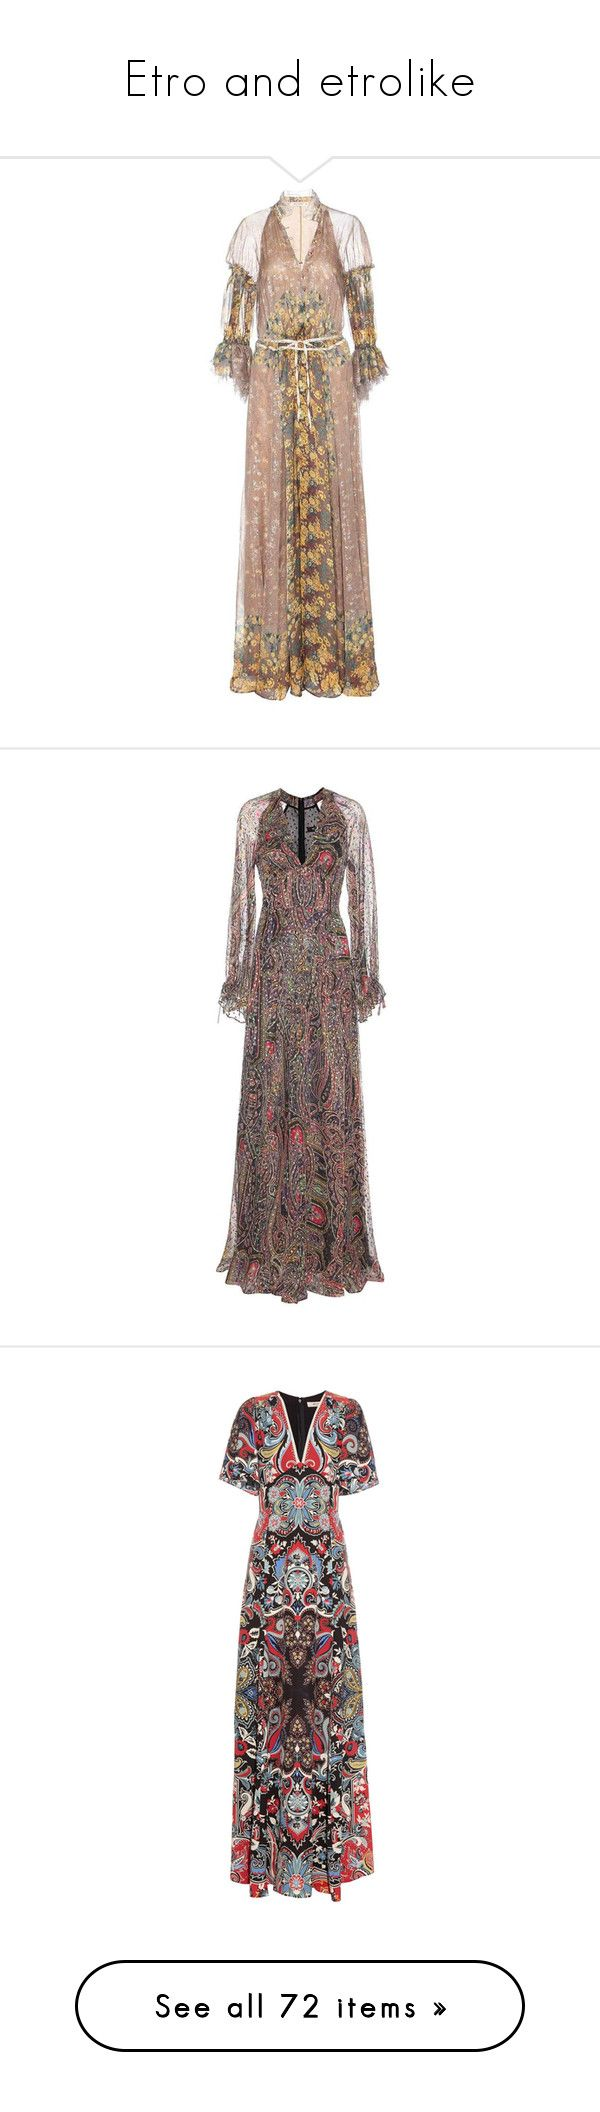 """Etro and etrolike"" by lorika-borika on Polyvore featuring dresses, cocktail/gowns, multicoloured, cocktail dresses, brown silk dress, multicolored dress, brown dresses, silk dress, multi-color dresses и etro dresses"